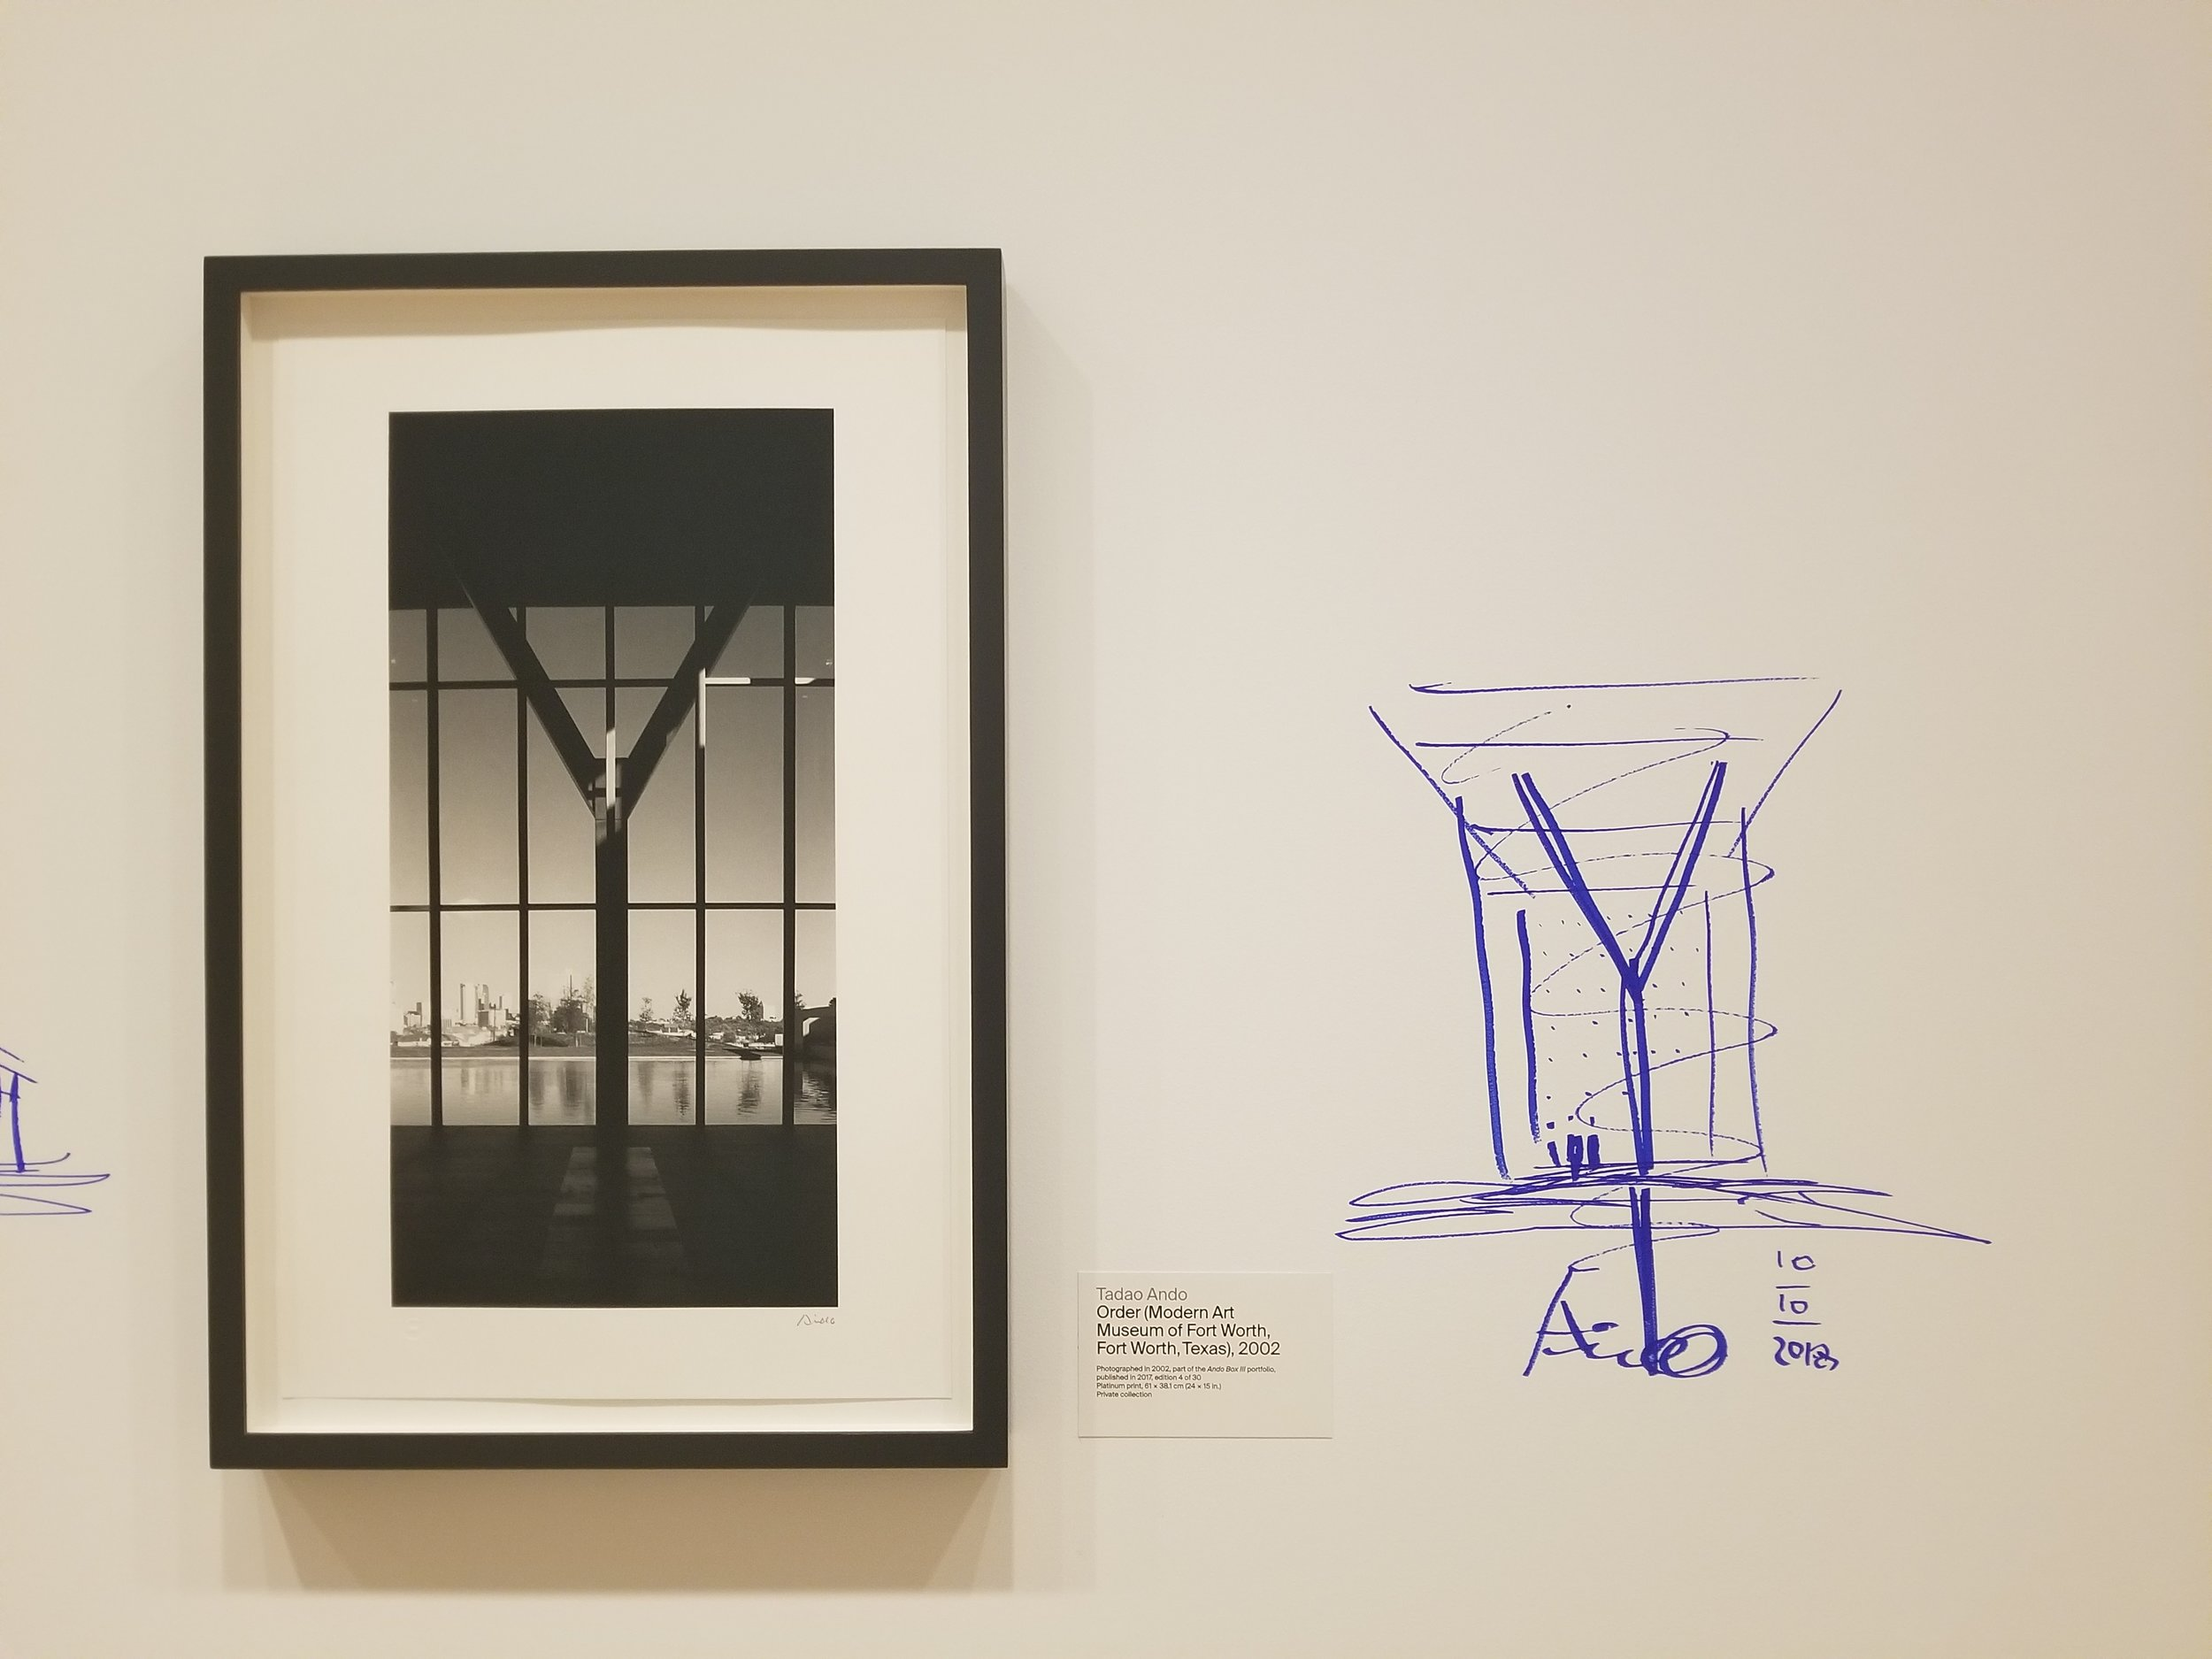 Ando's hand-drawn design next to a photo of one of his works.